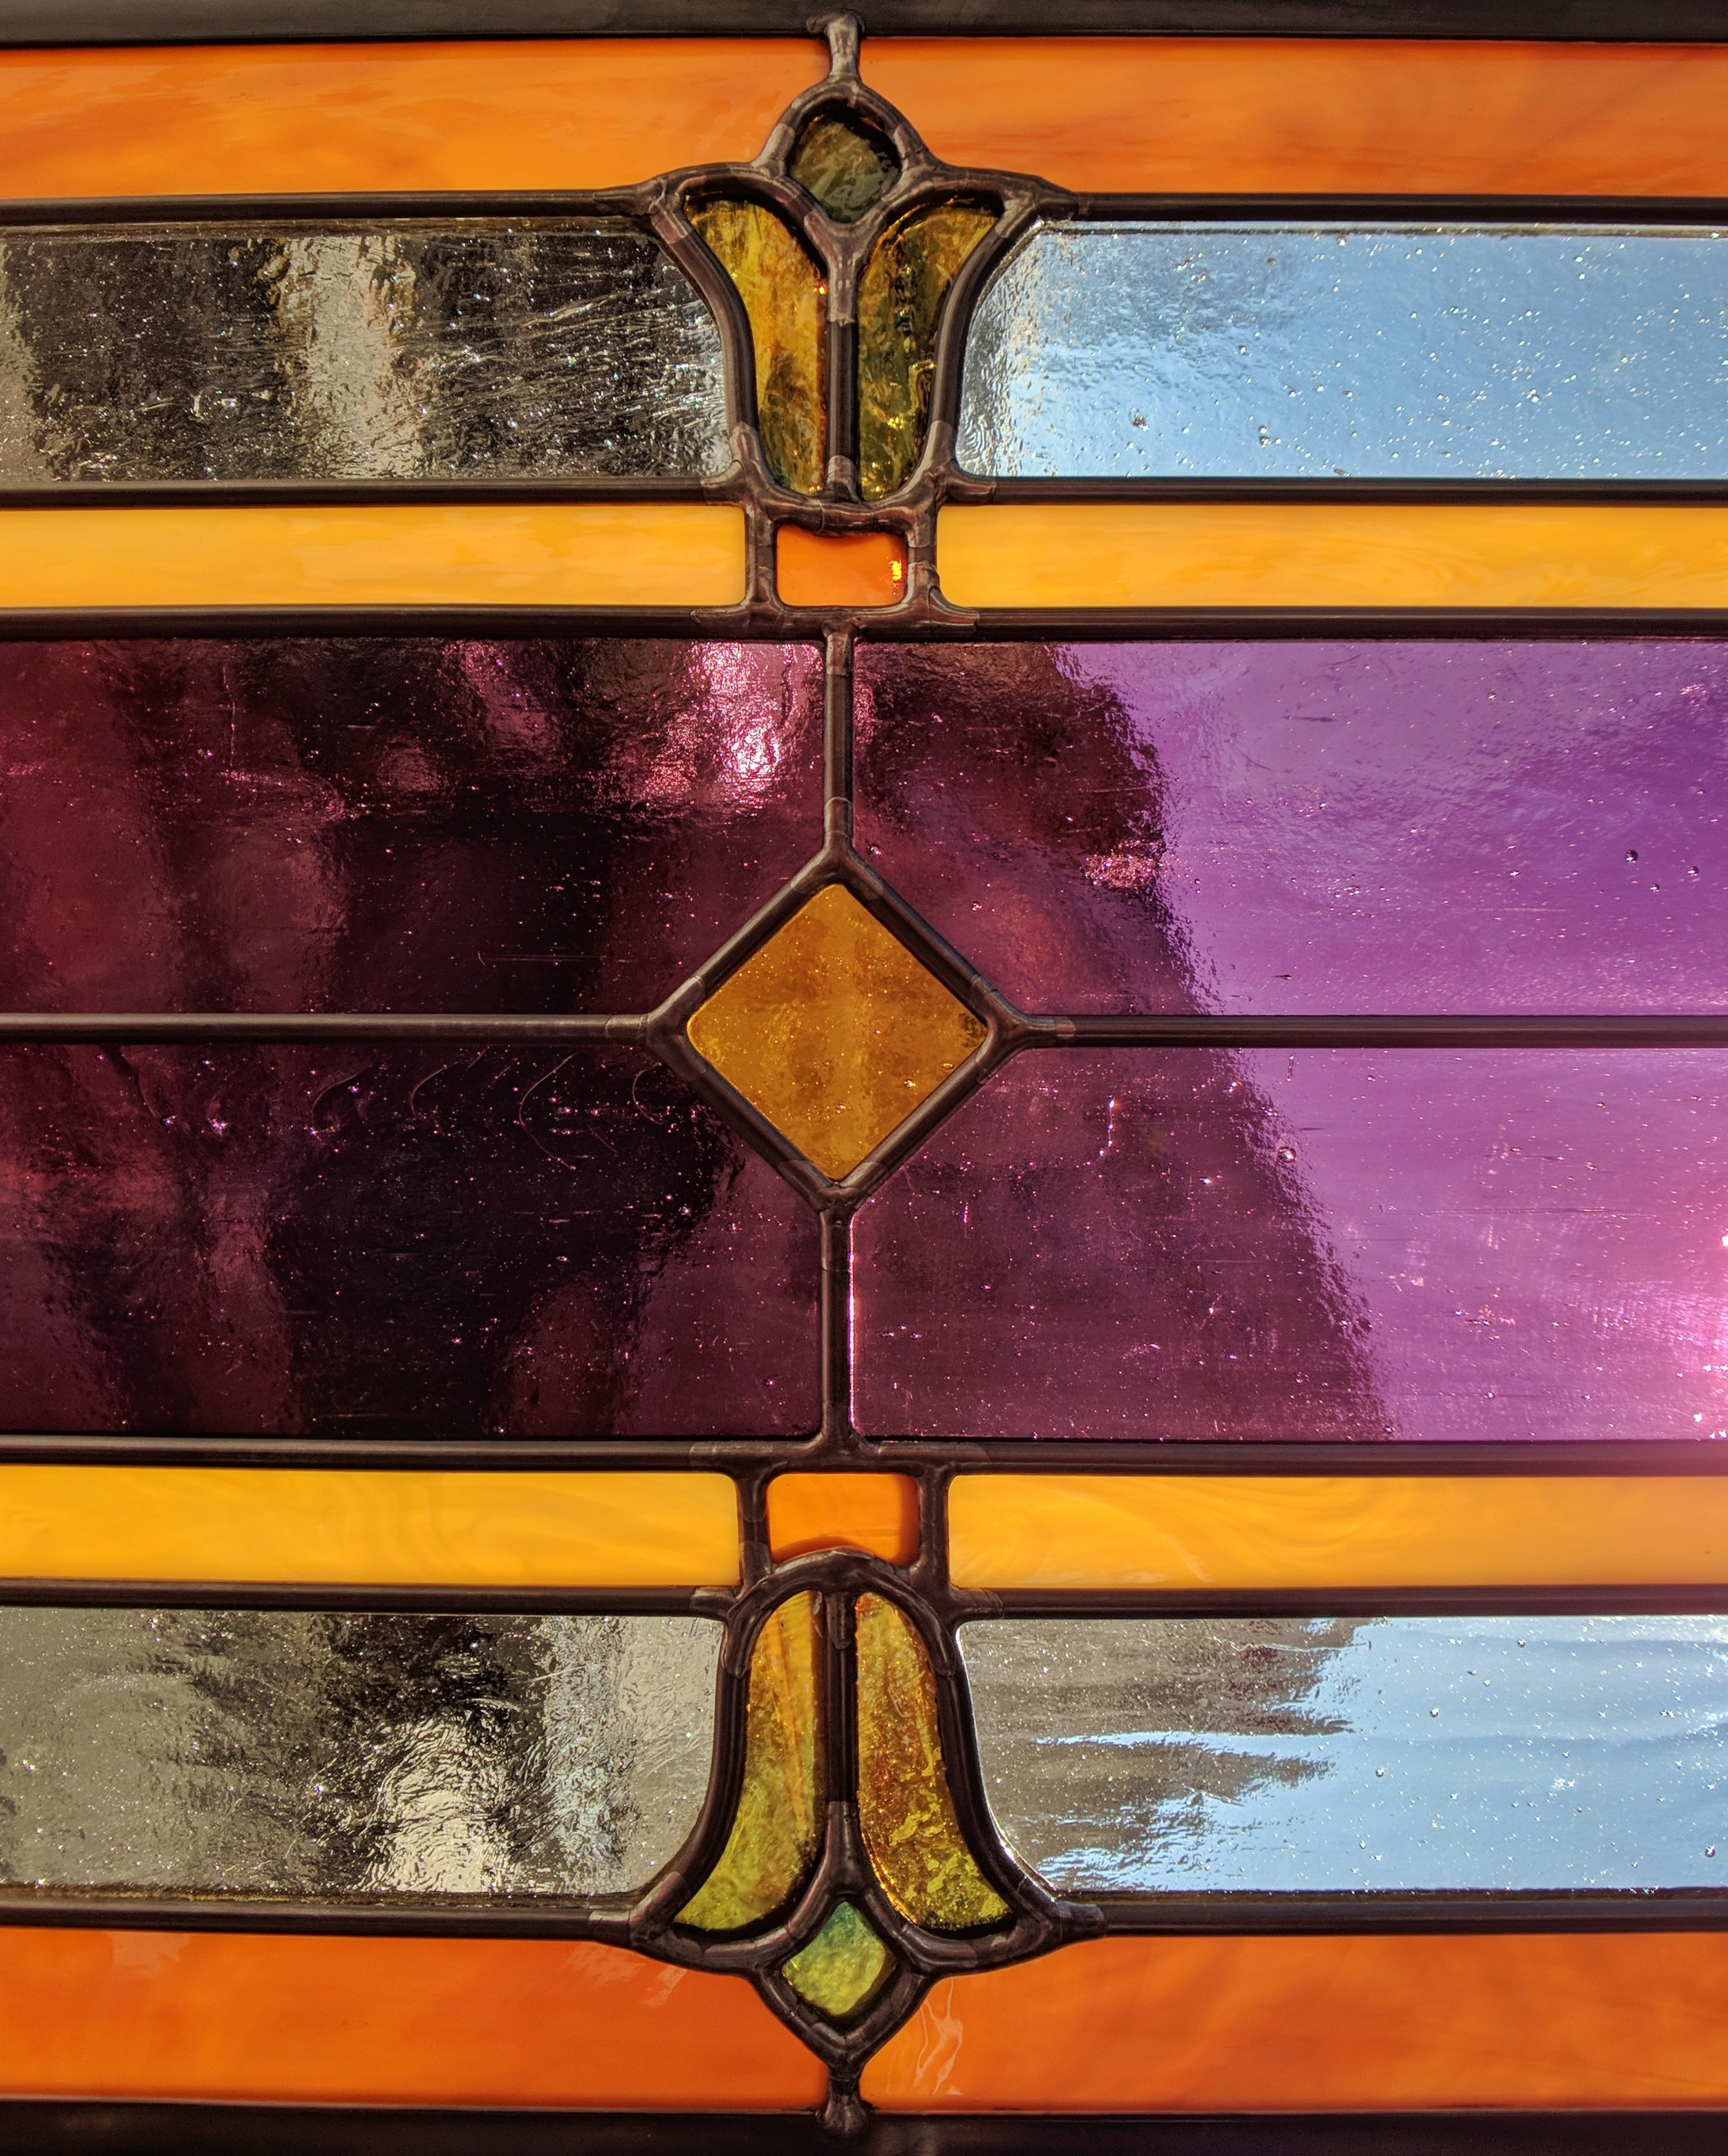 stained glass leaded glass design legacy glass studios menlo park bay area california custom design insulated window tulip uroboros multicolored glass amber close up.jpeg